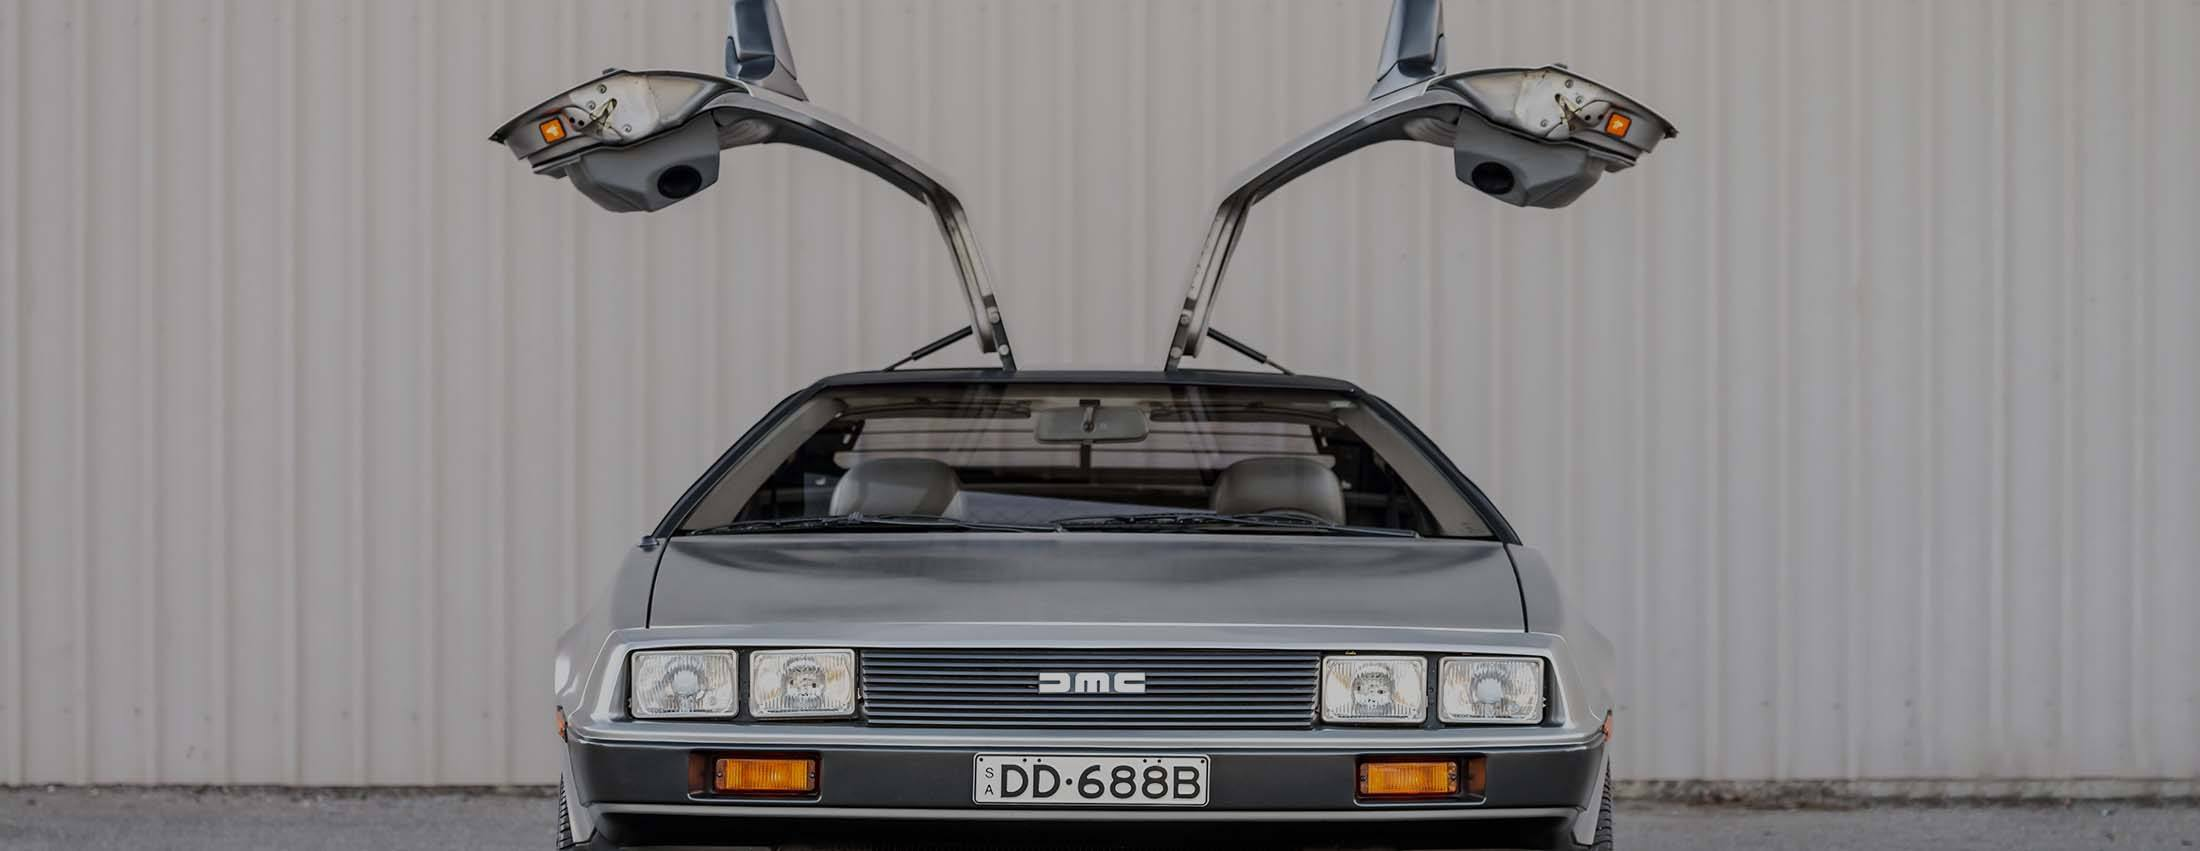 Desktop hero image of Delorean